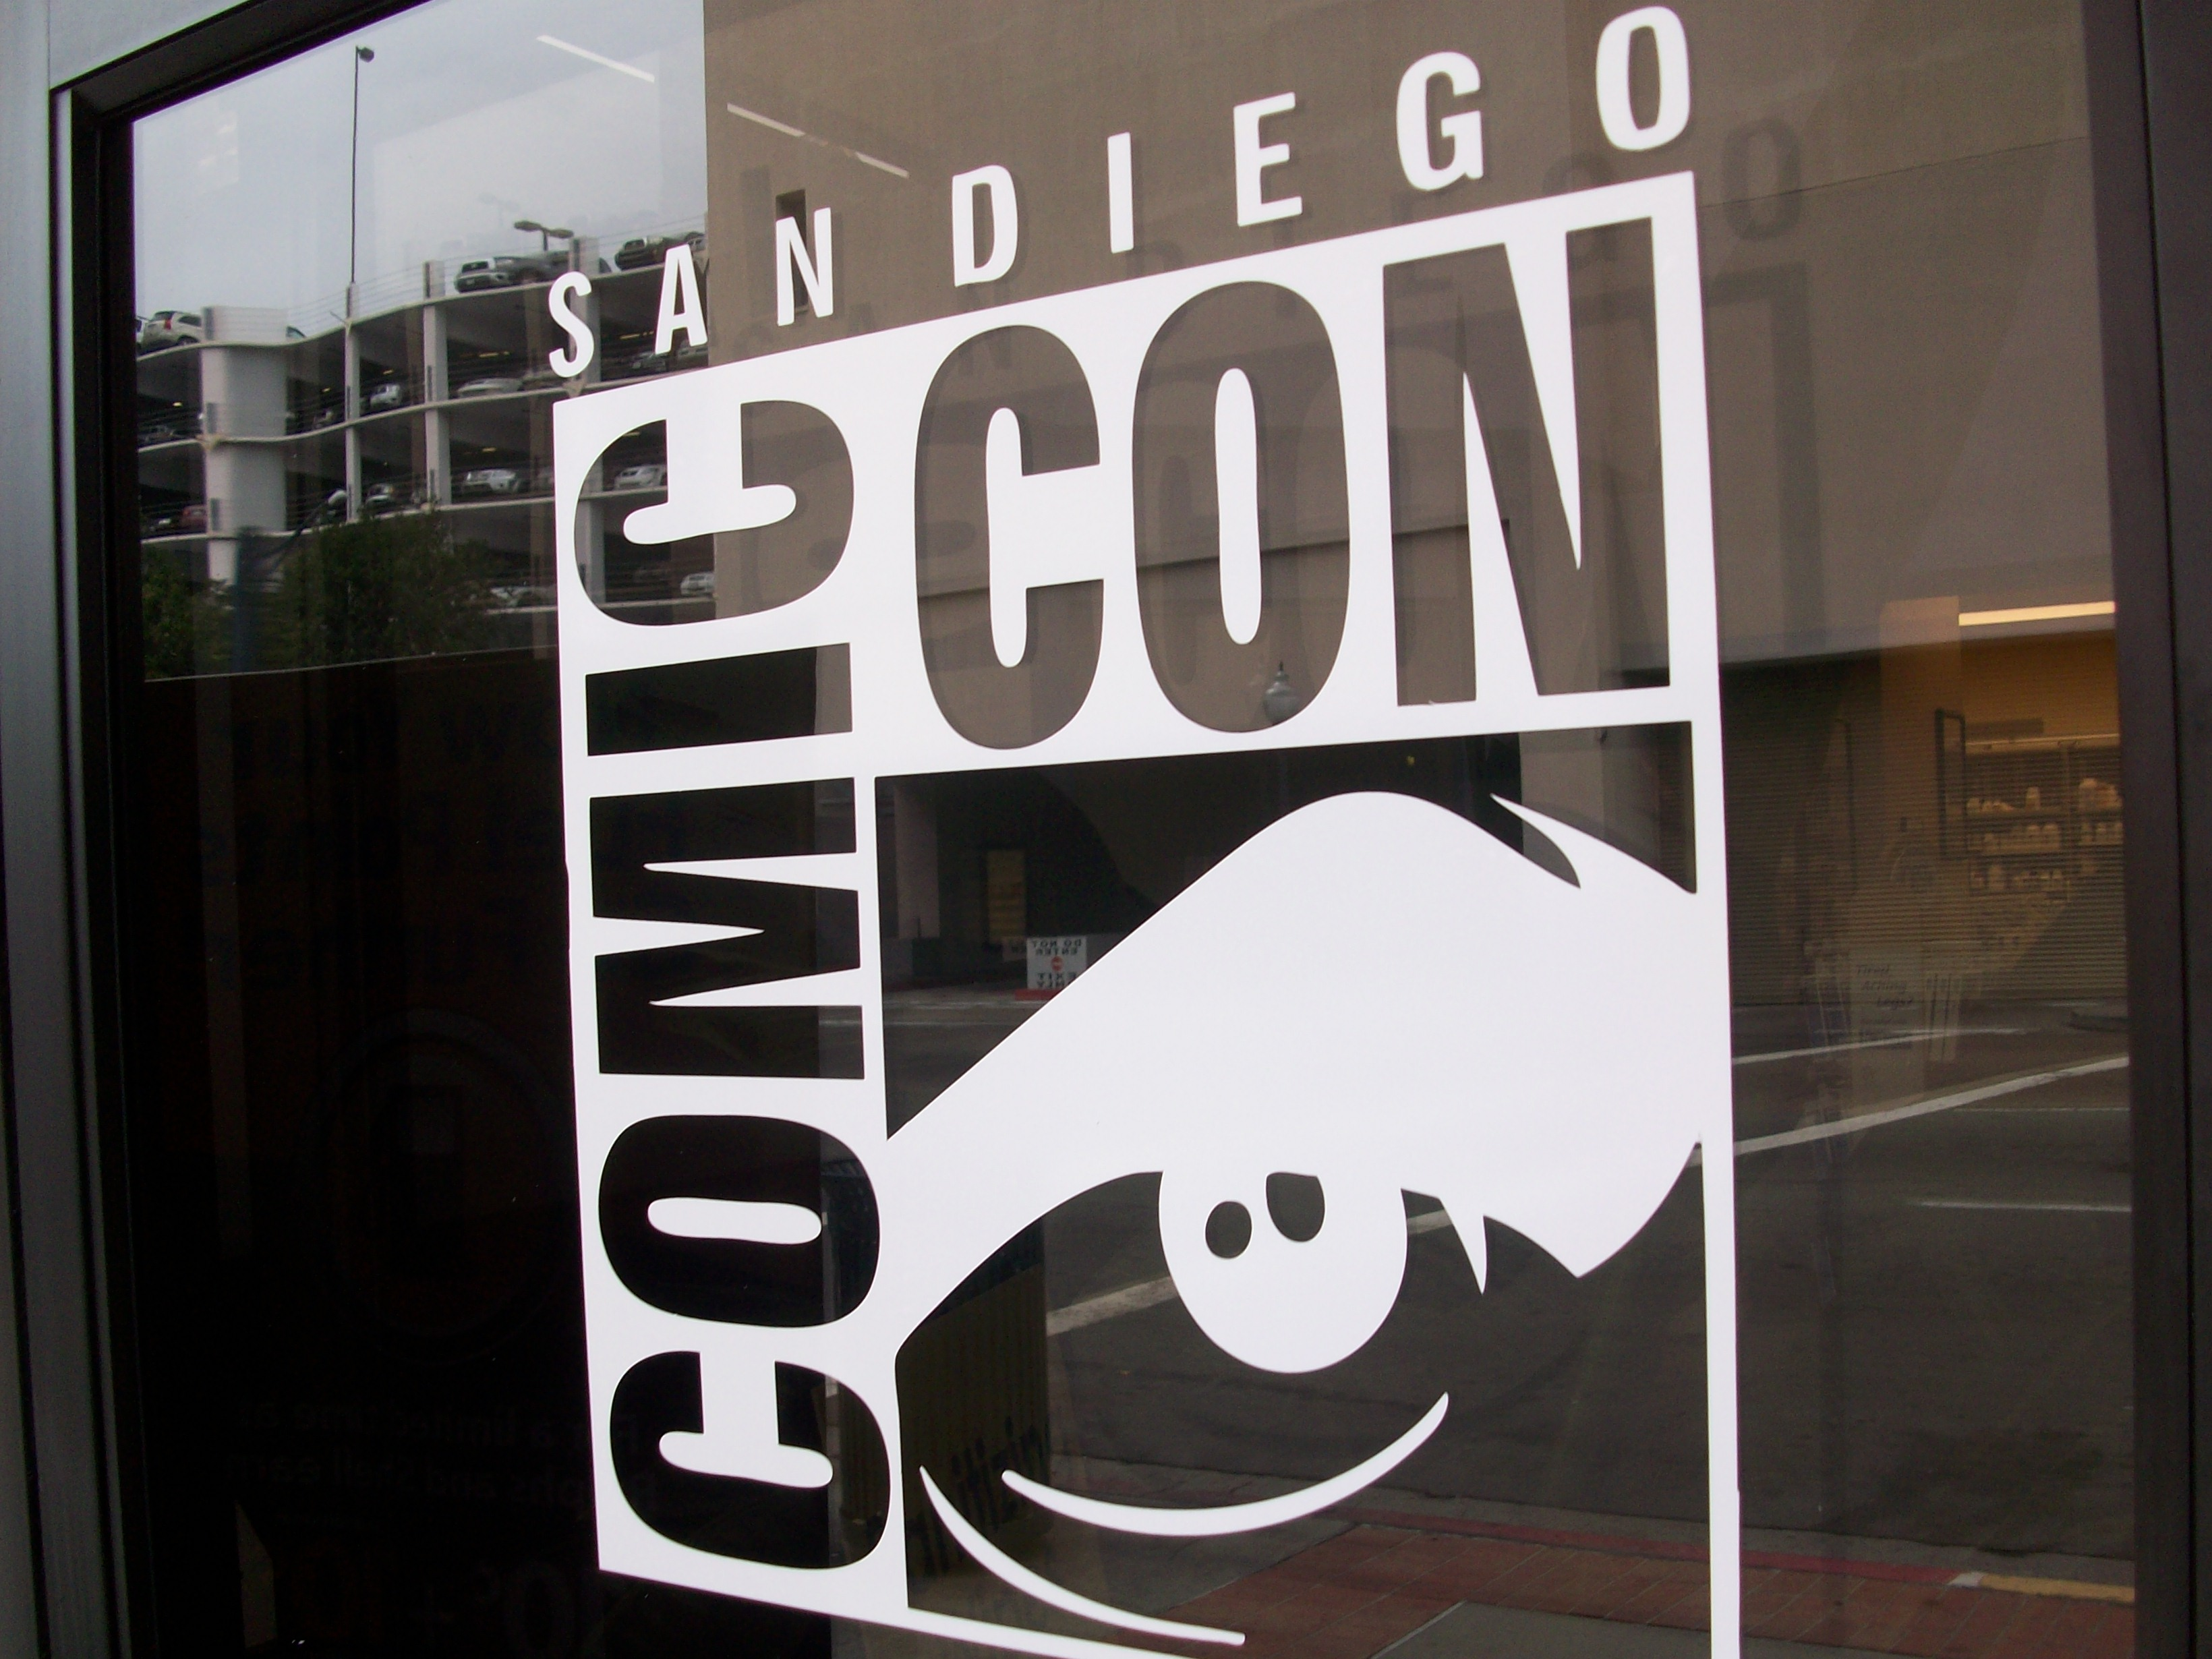 San Diego Comic Con, the biggest convention for anyone into anything comics or just about anything, really. I went to...